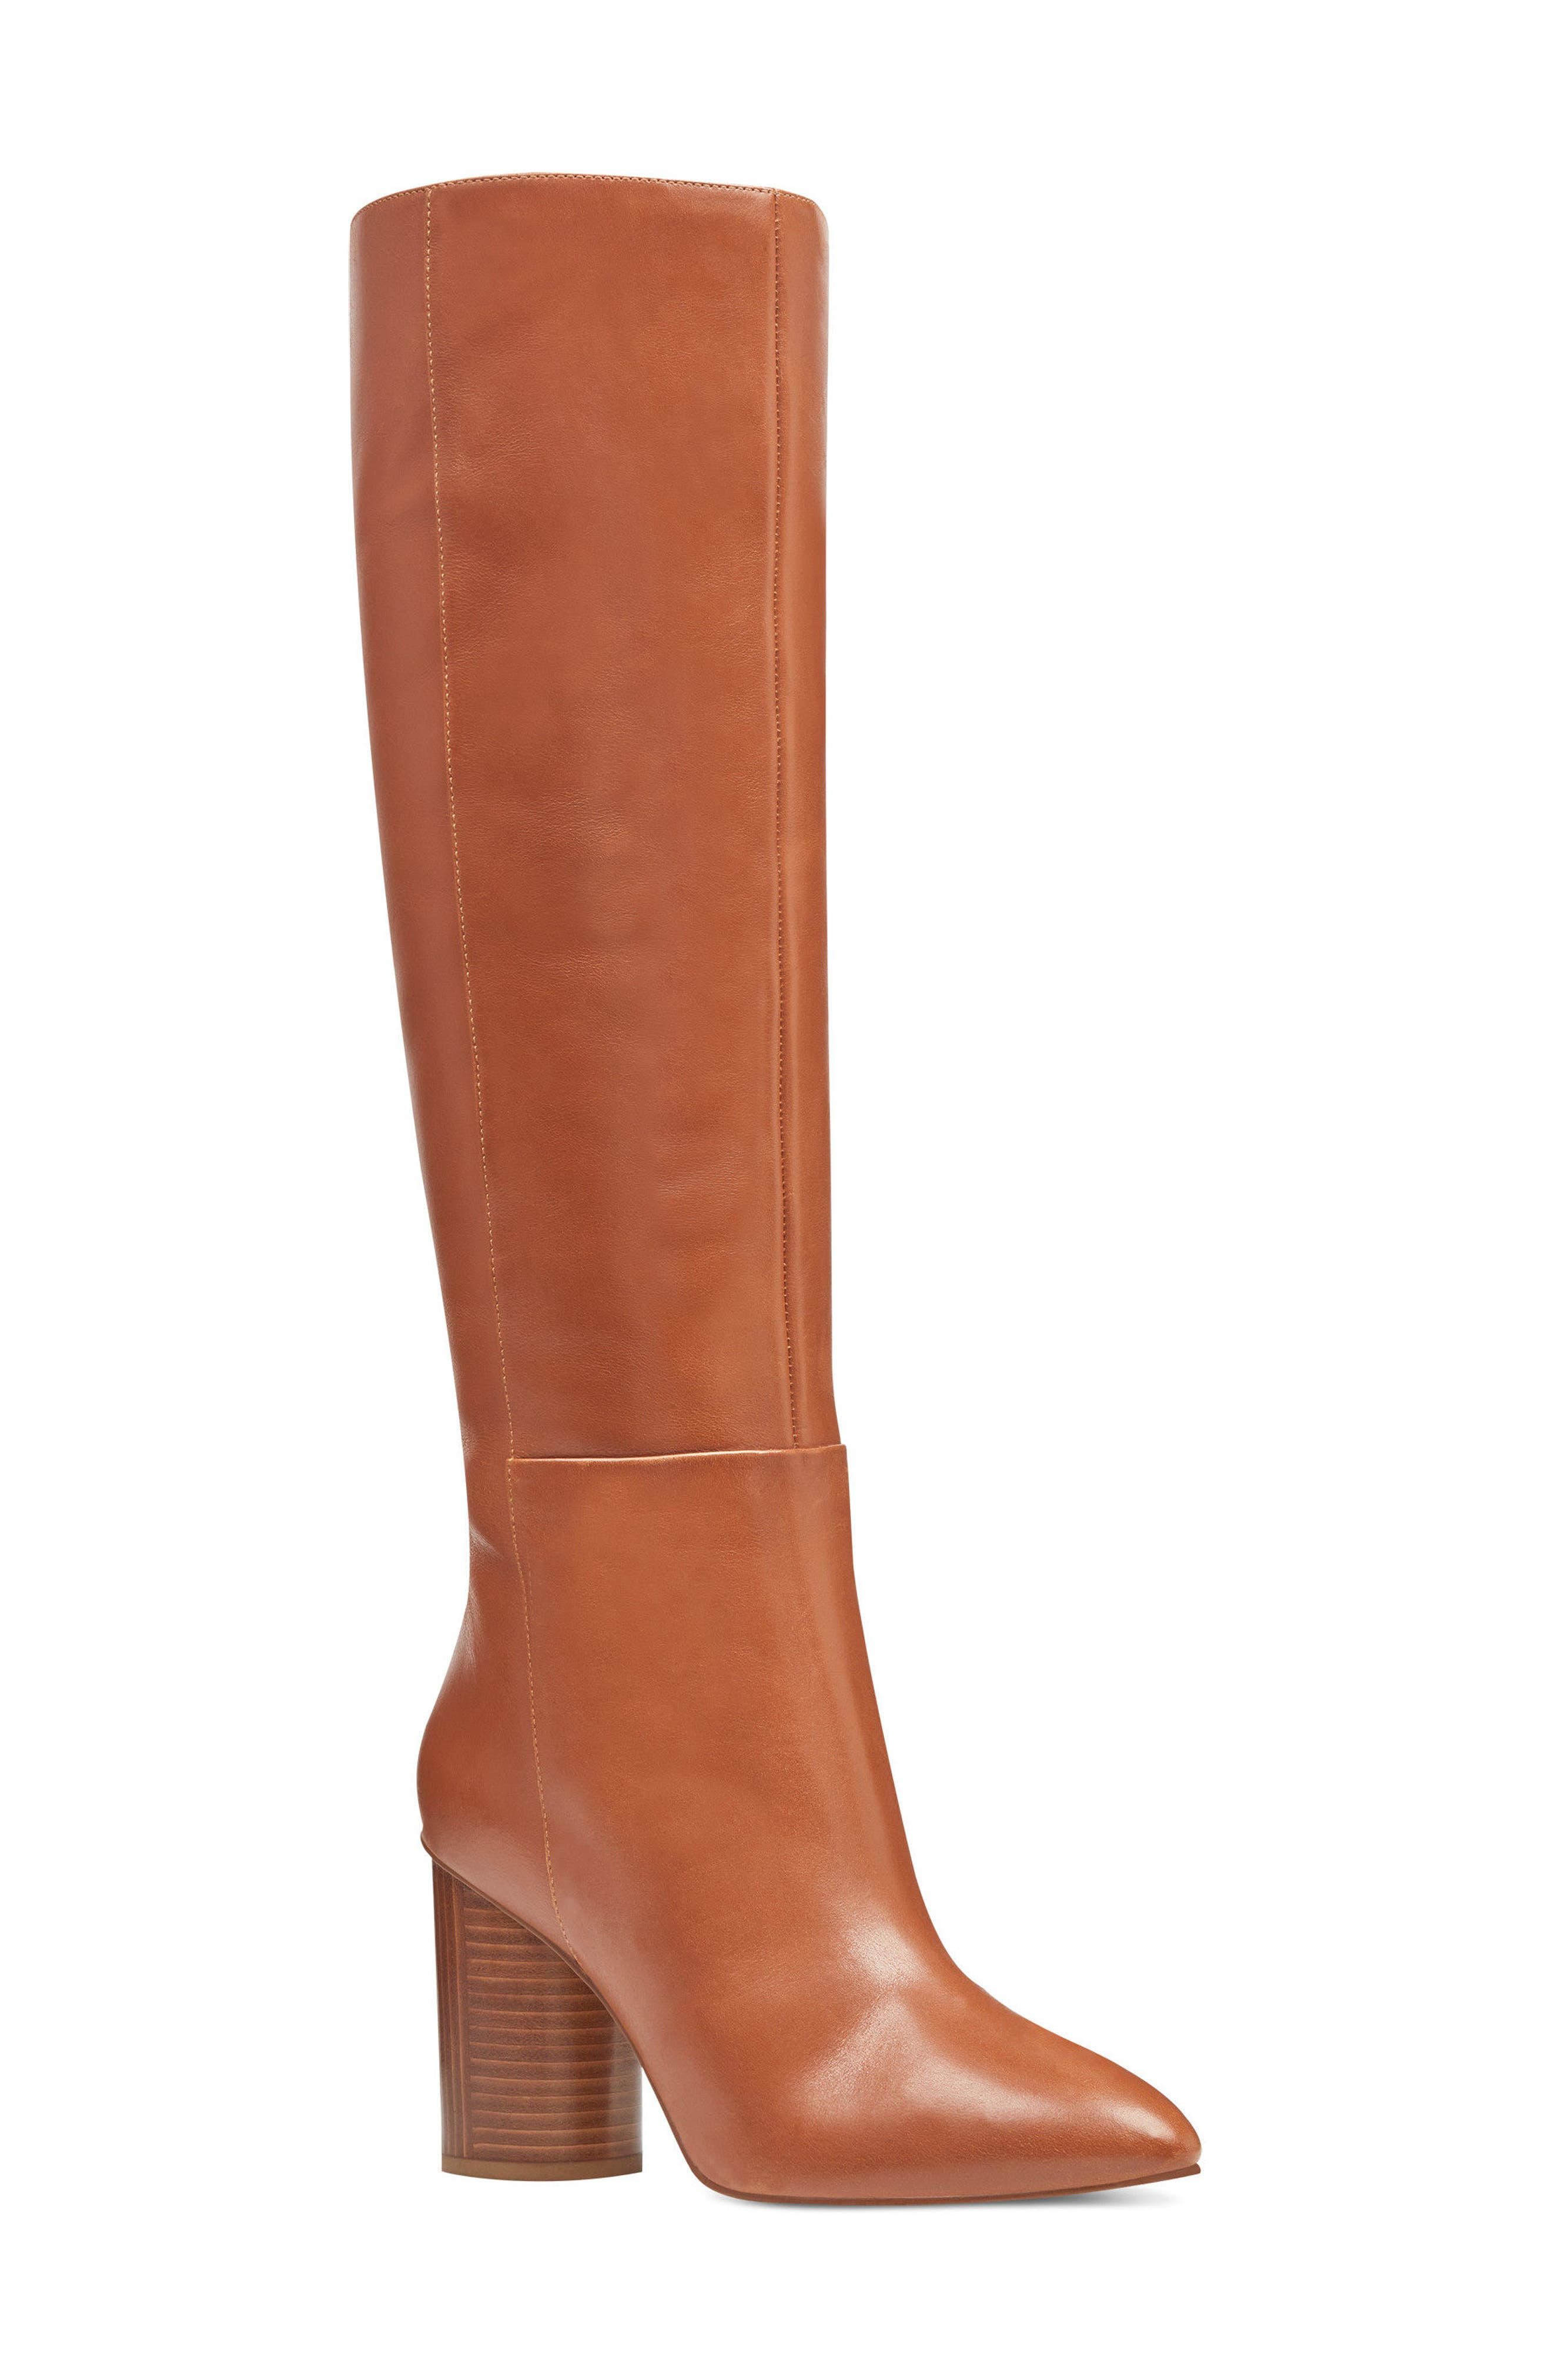 Christie Knee High Boot,                             Main thumbnail 1, color,                             Dark Natural Leather